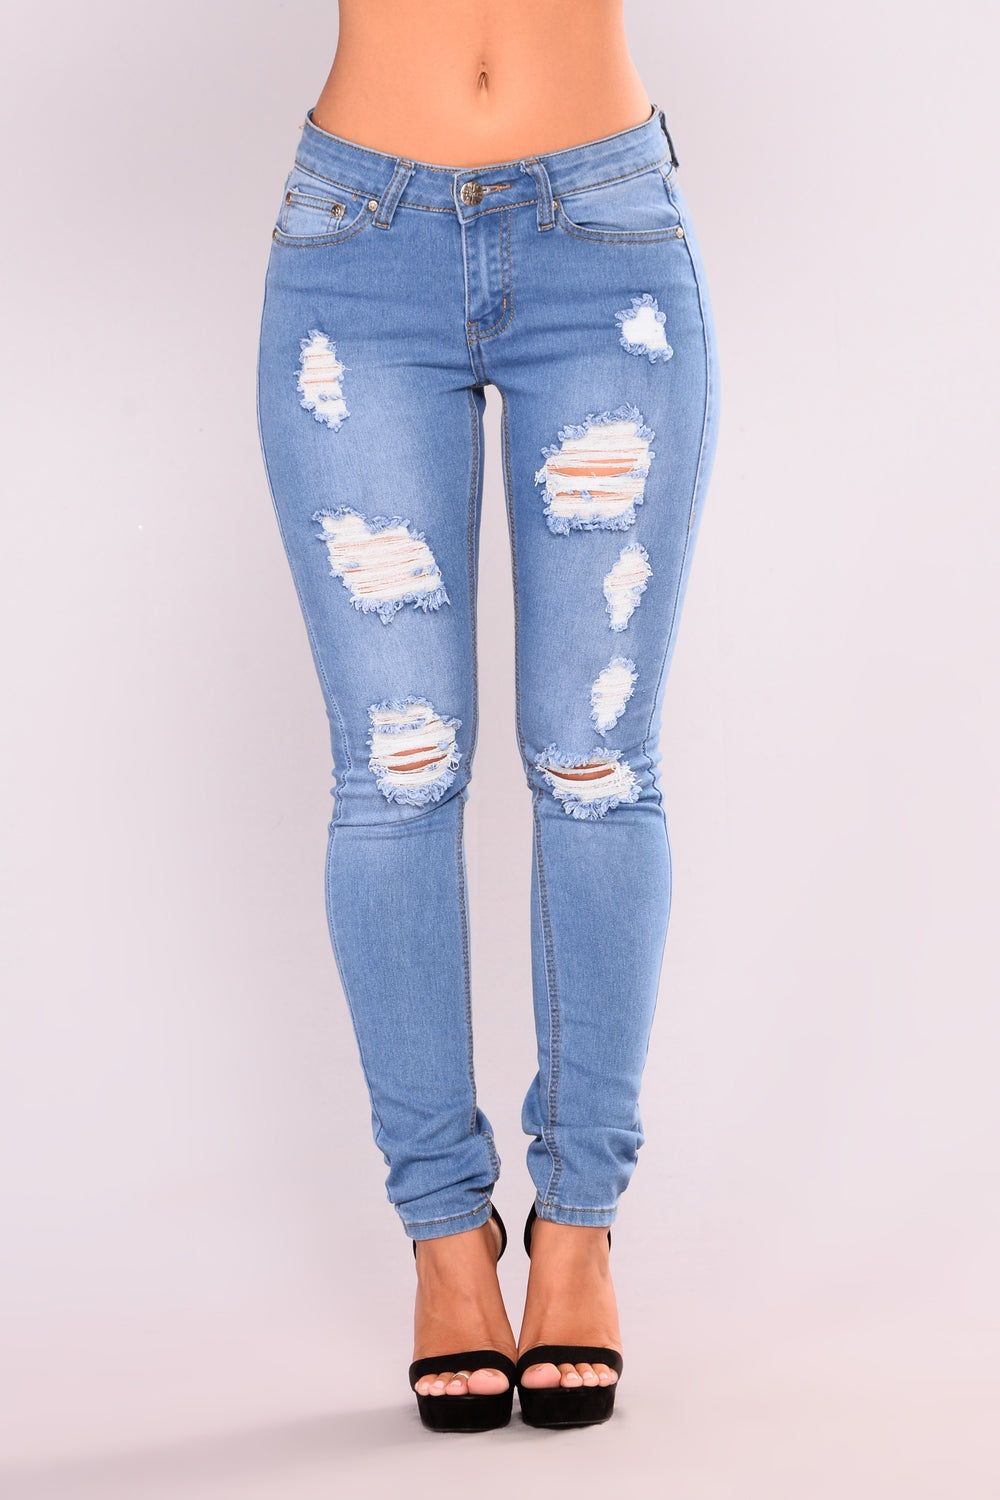 Beauty In Everything Skinny Jeans - Light Blue Wash